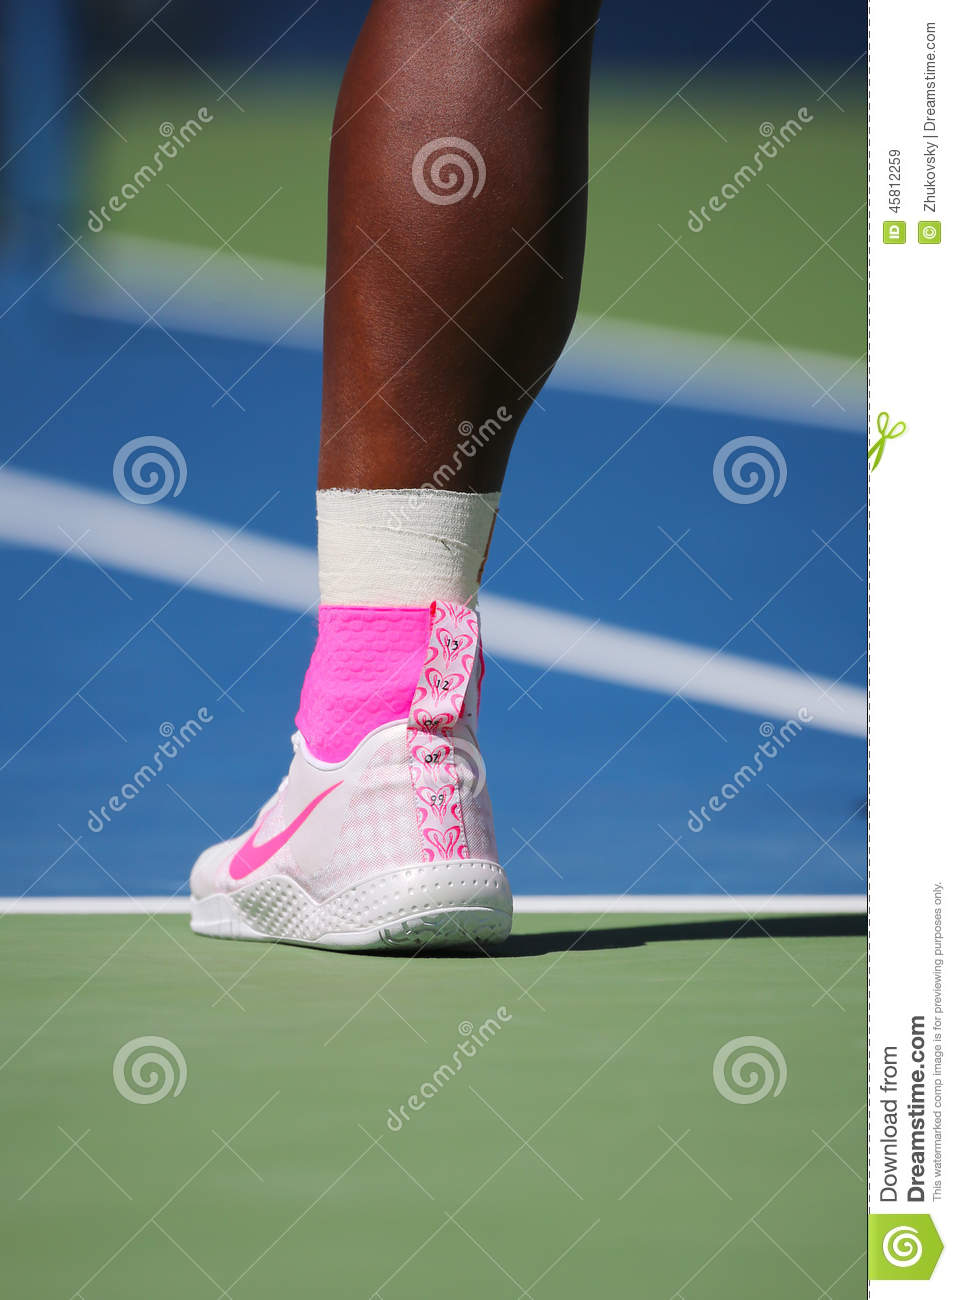 Tennis Shoes Serena Williams Wears